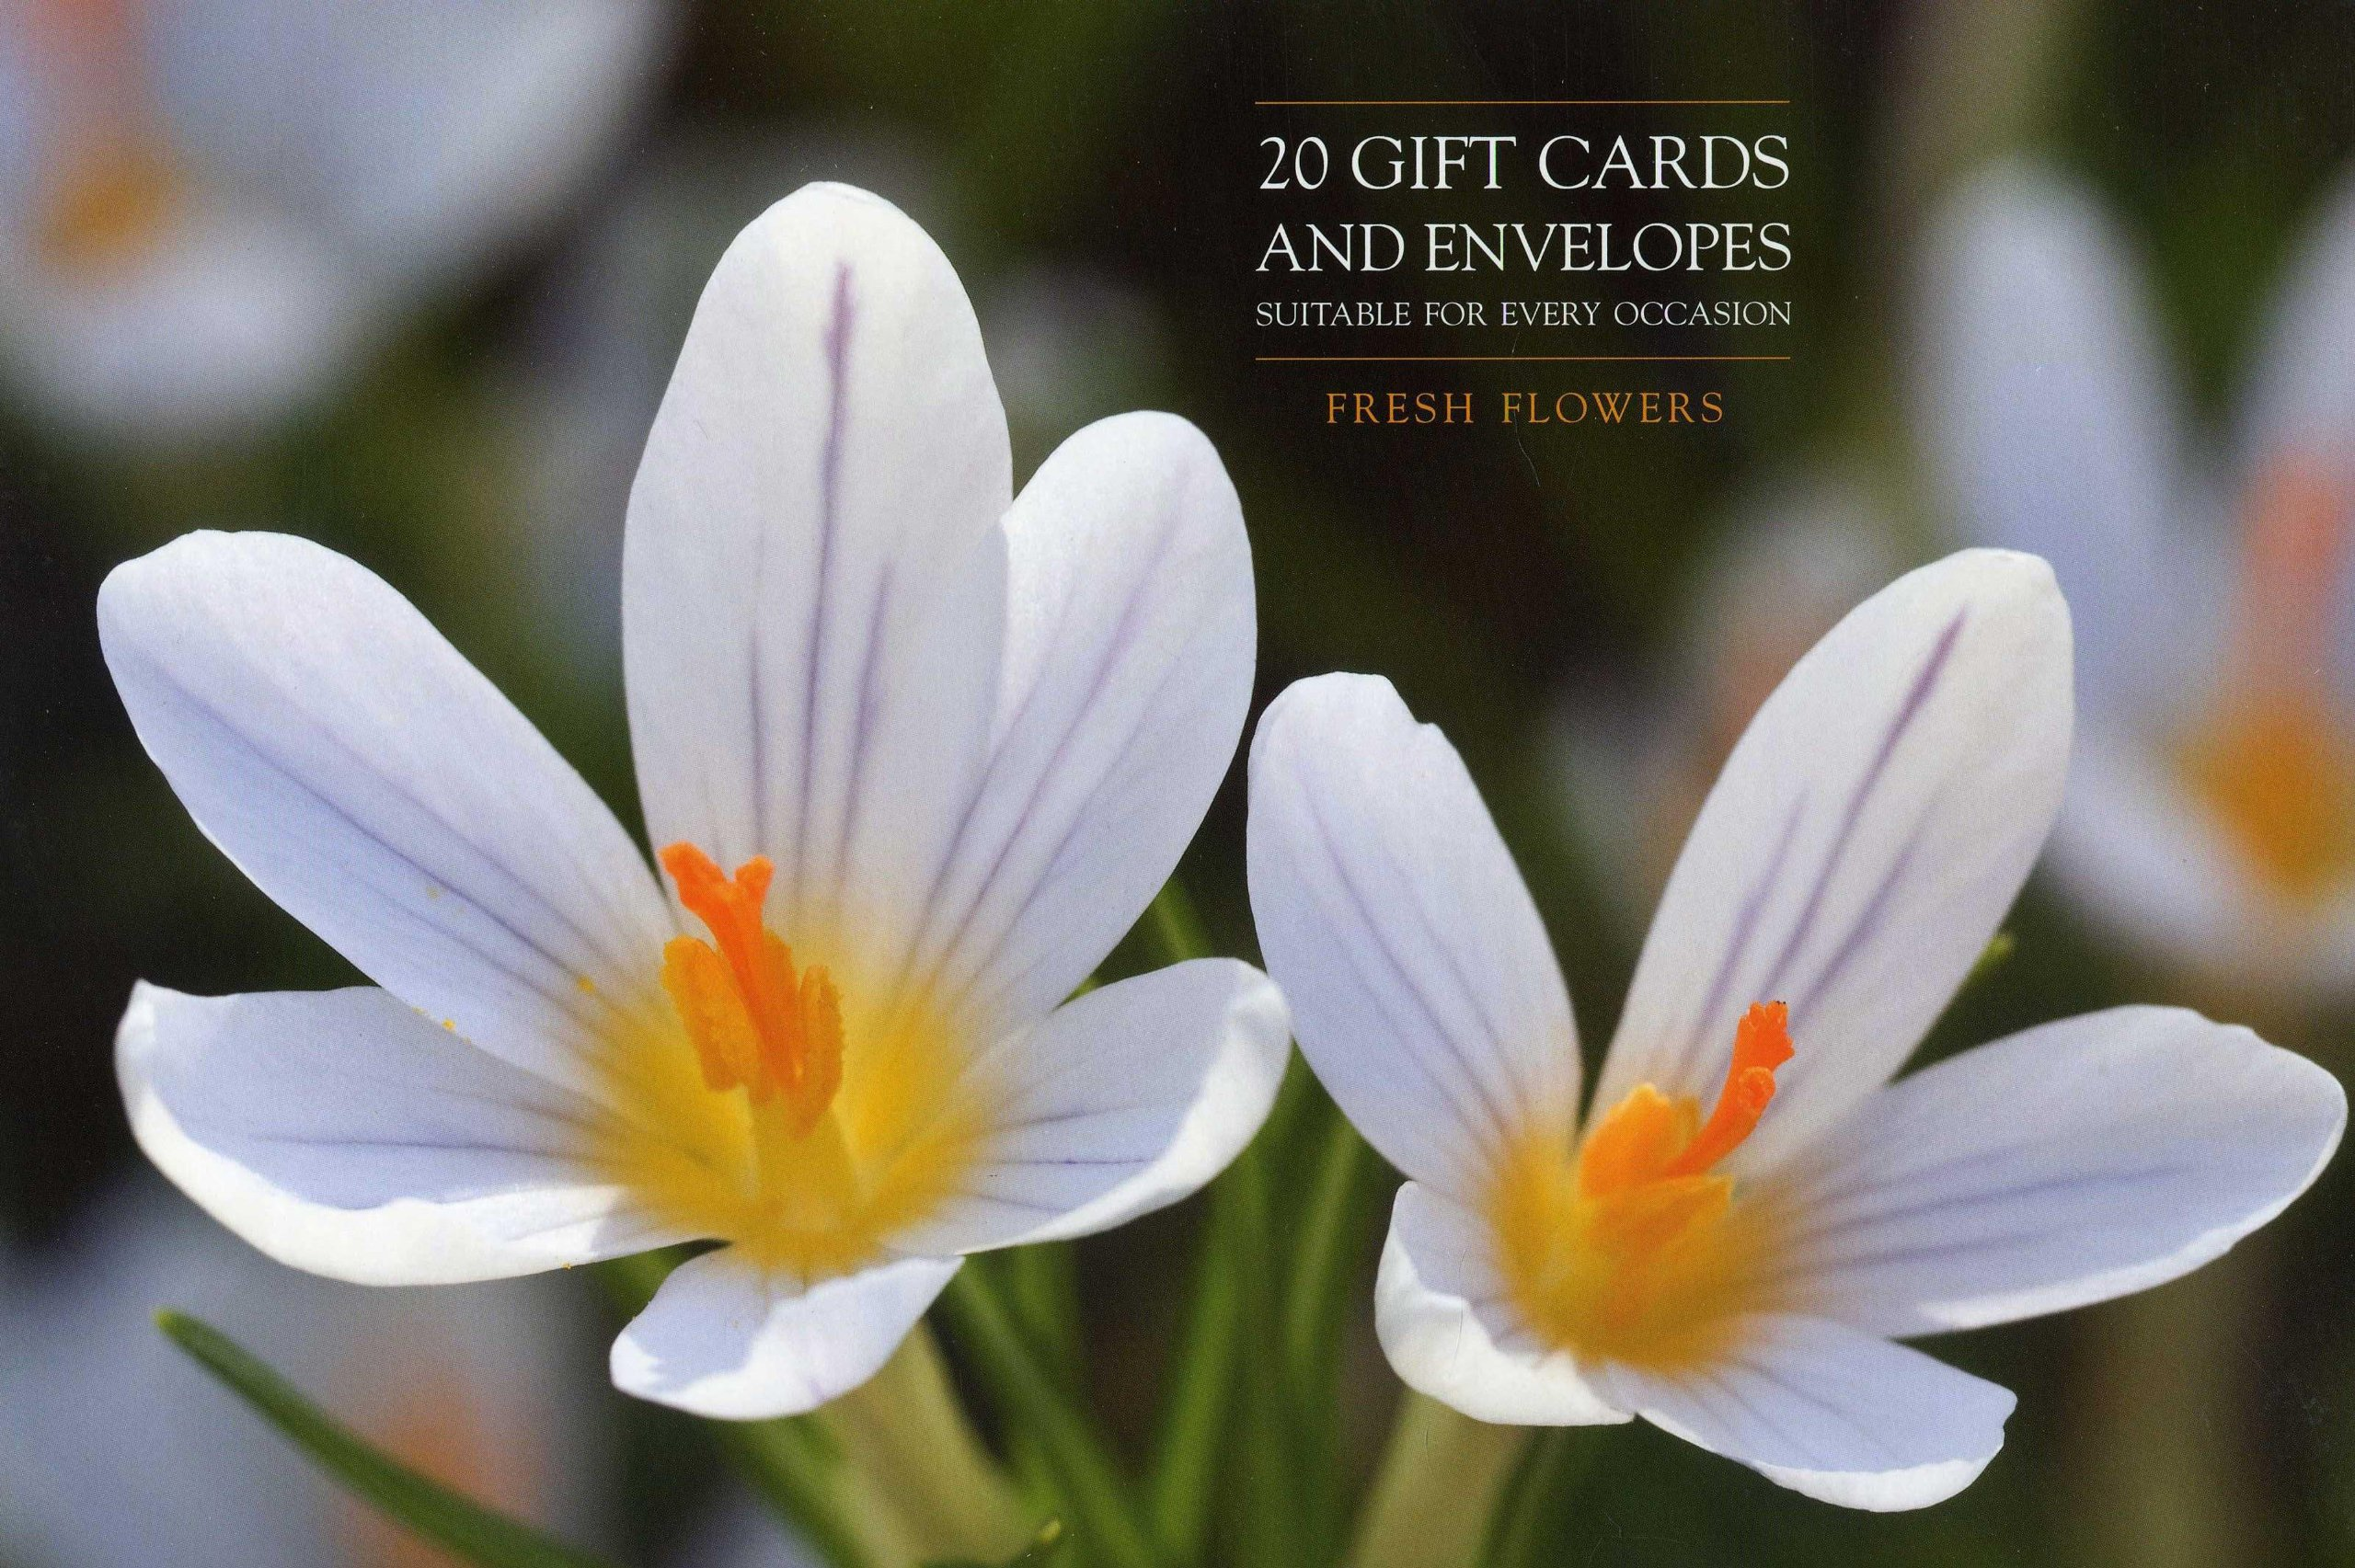 Download Card Box of 20 Notecards and Envelopes: Fresh Flowers: A Delightful Pack Of High-Quality Flower Gift Cards And Decorative Envelopes ebook